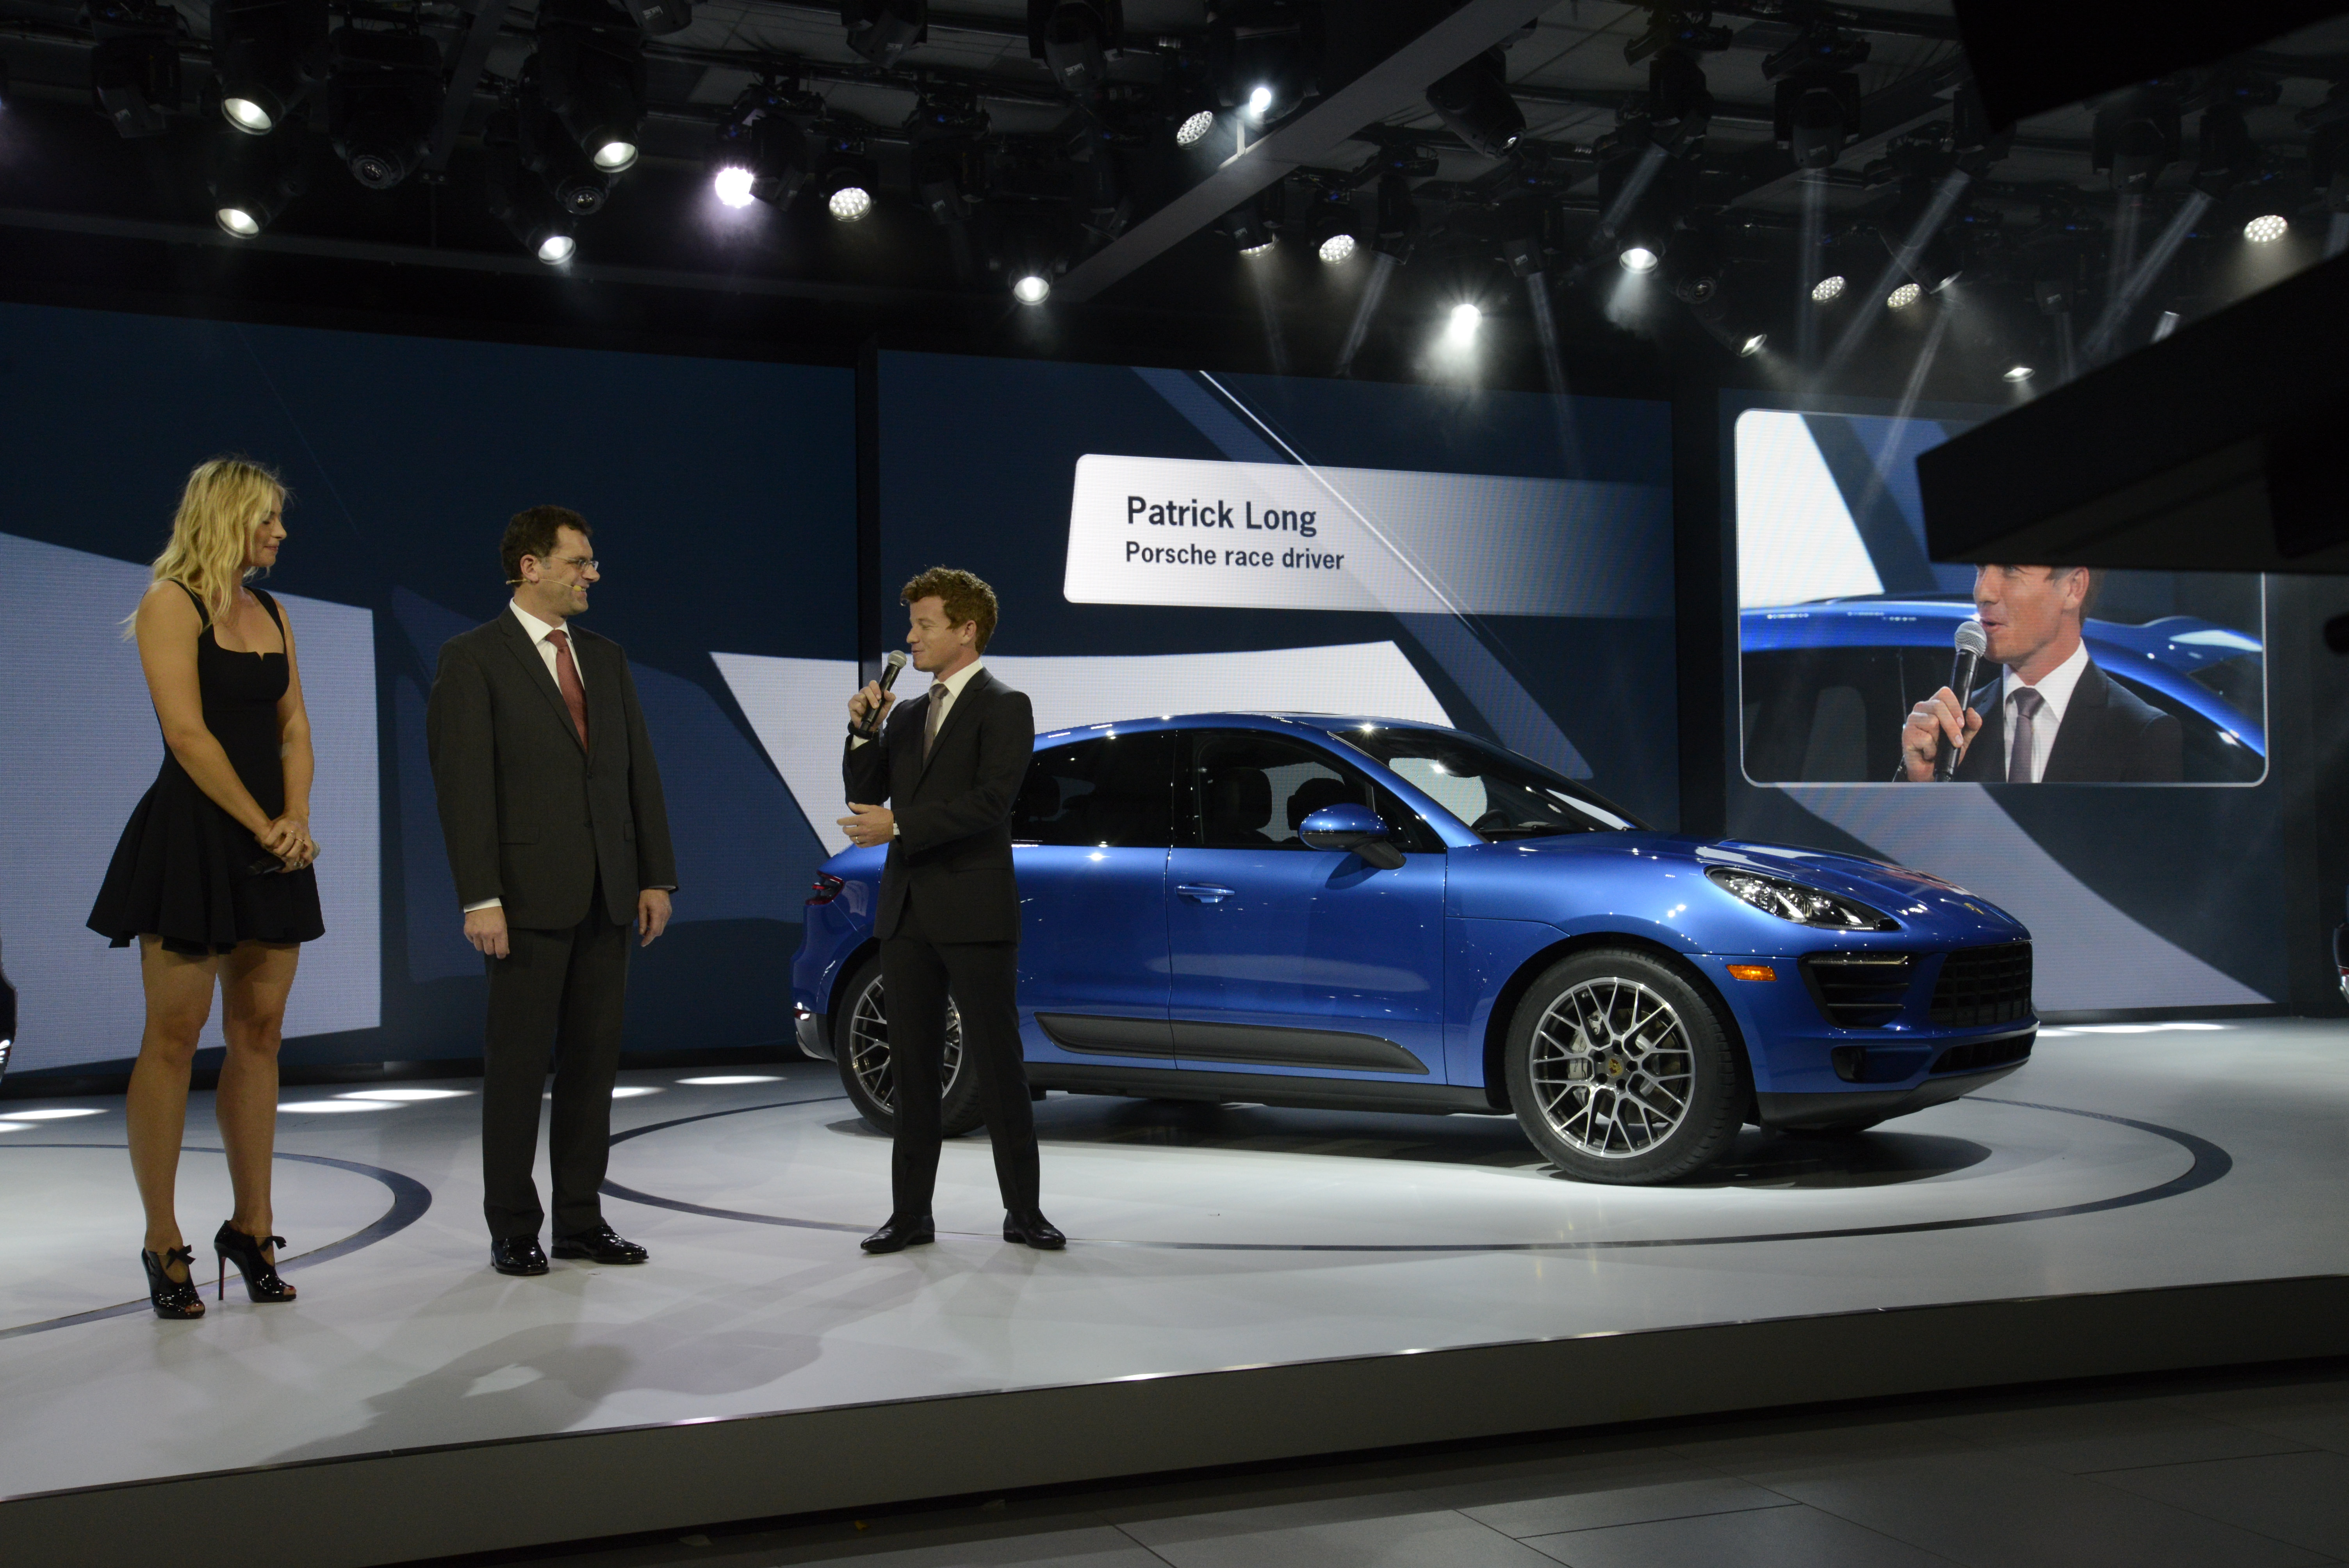 Porsche Macan Suv Unveiled In La With Up To 400 Hp Paul Tan Image 212498